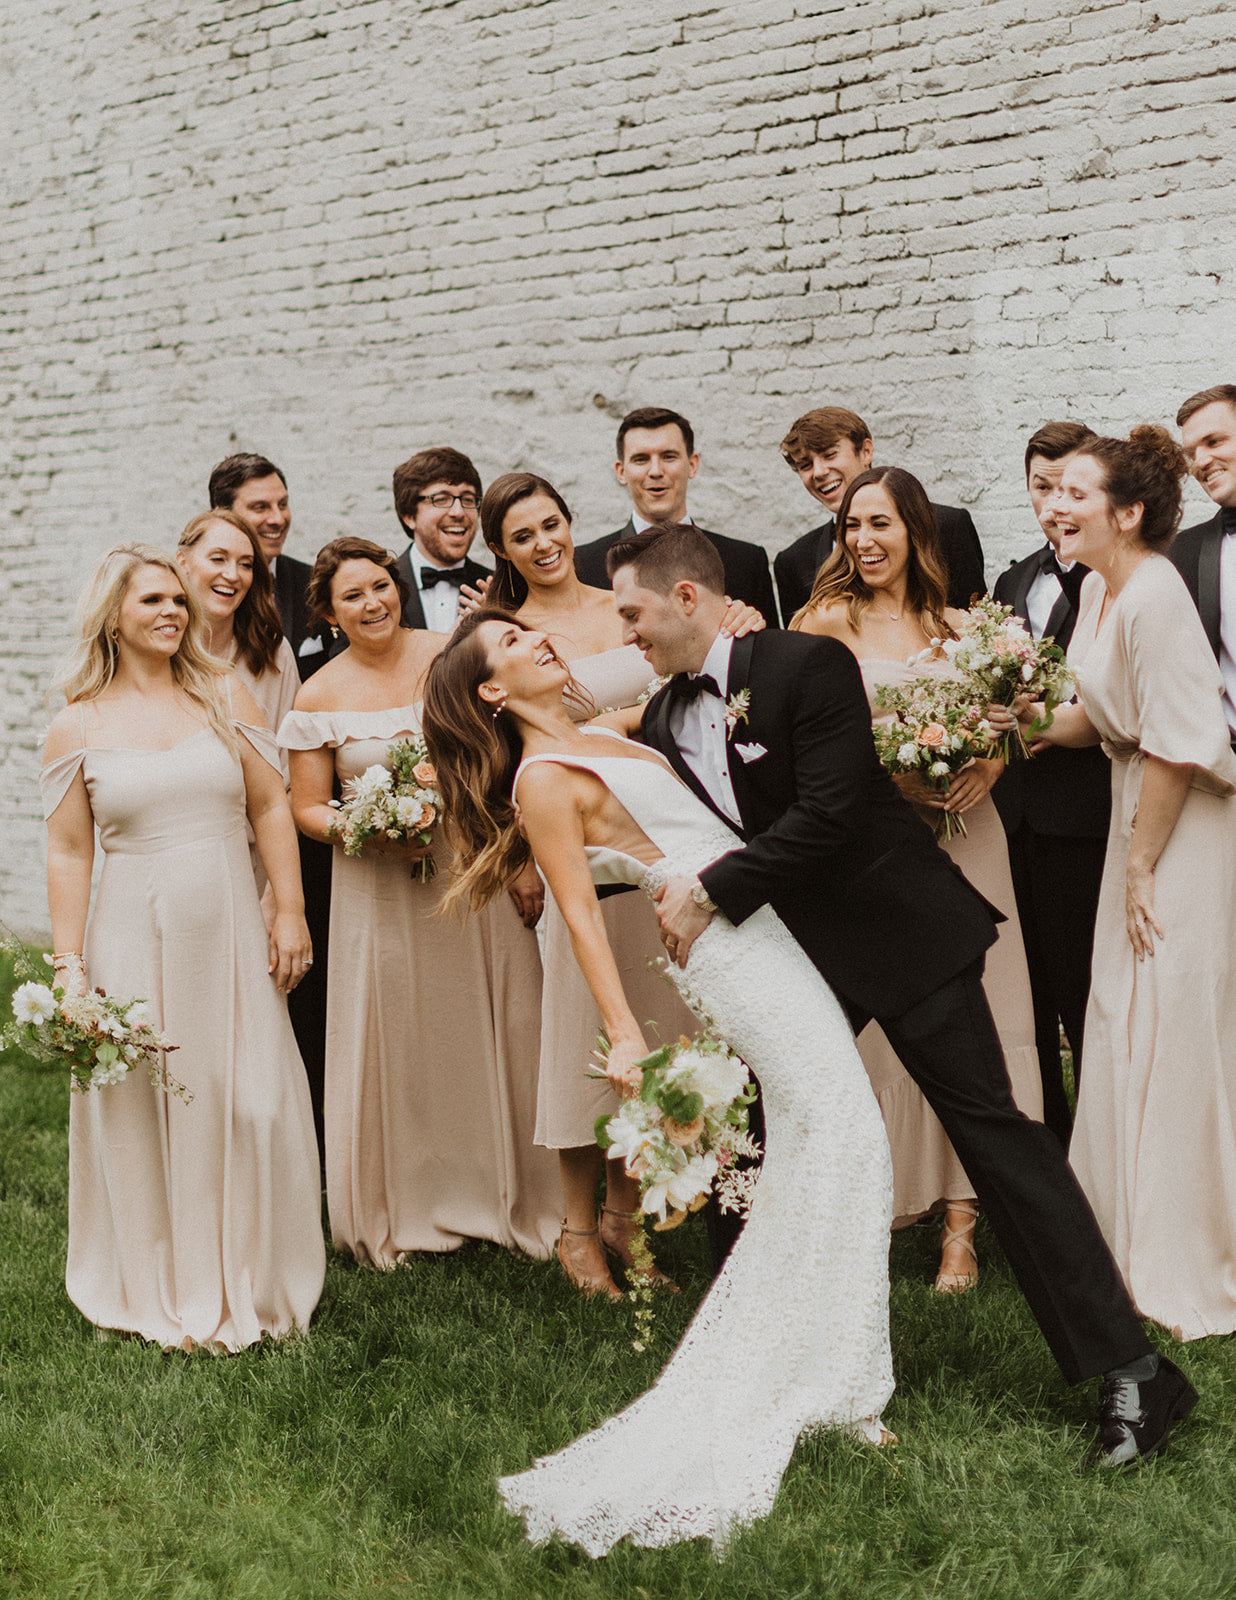 Jenny + Riley's Minimalist Wedding